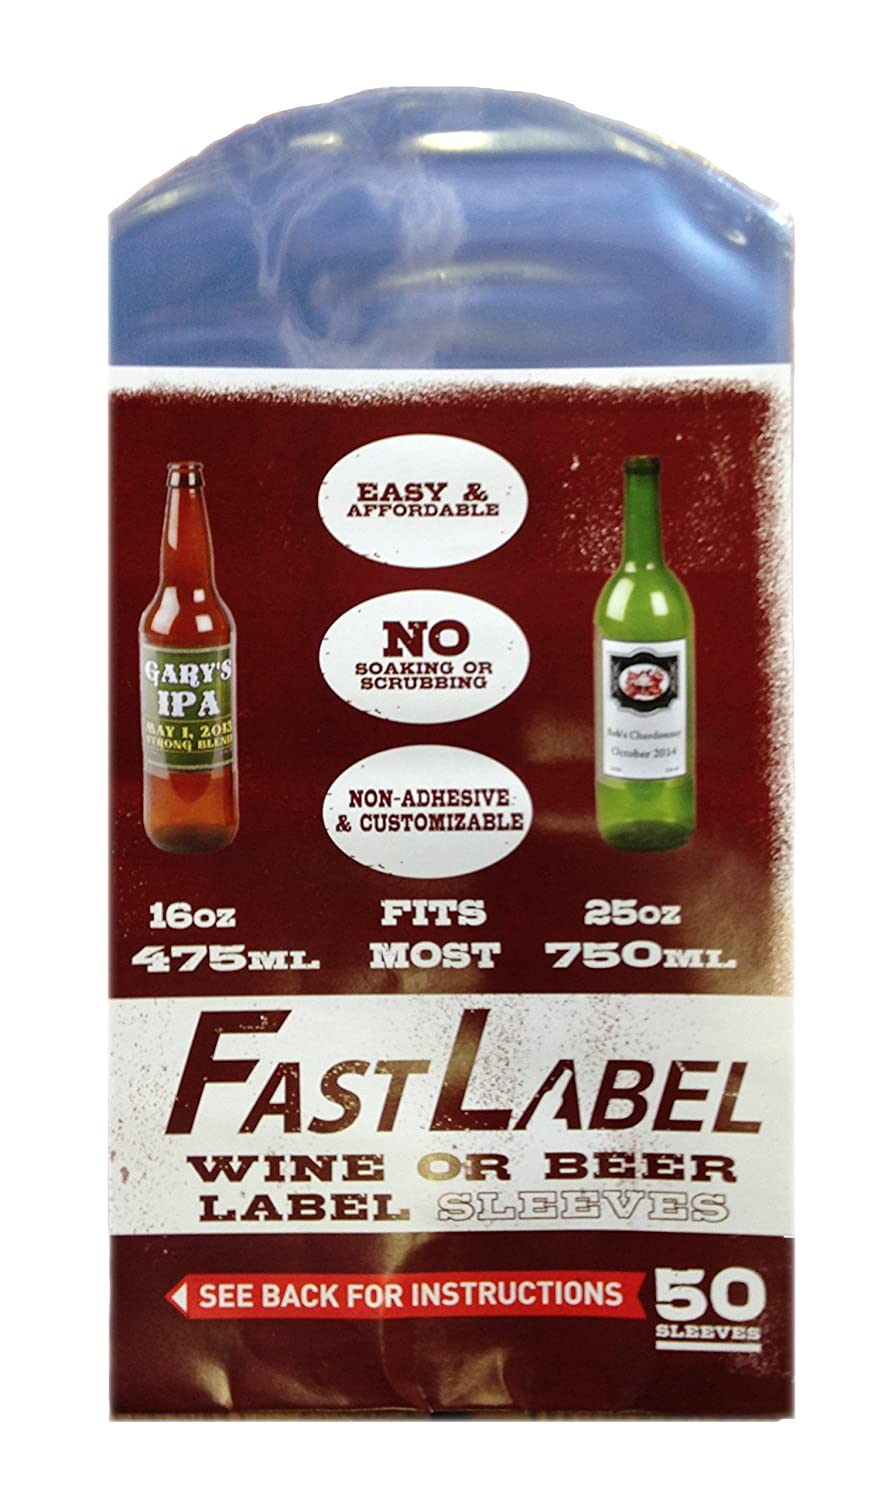 FastLabel Fermentation Accessories - Standard 12oz Beer Bottle labels - Never scrub a bottle again brought to you by FastFerment AQ-AYYI-VAIS.MISSING